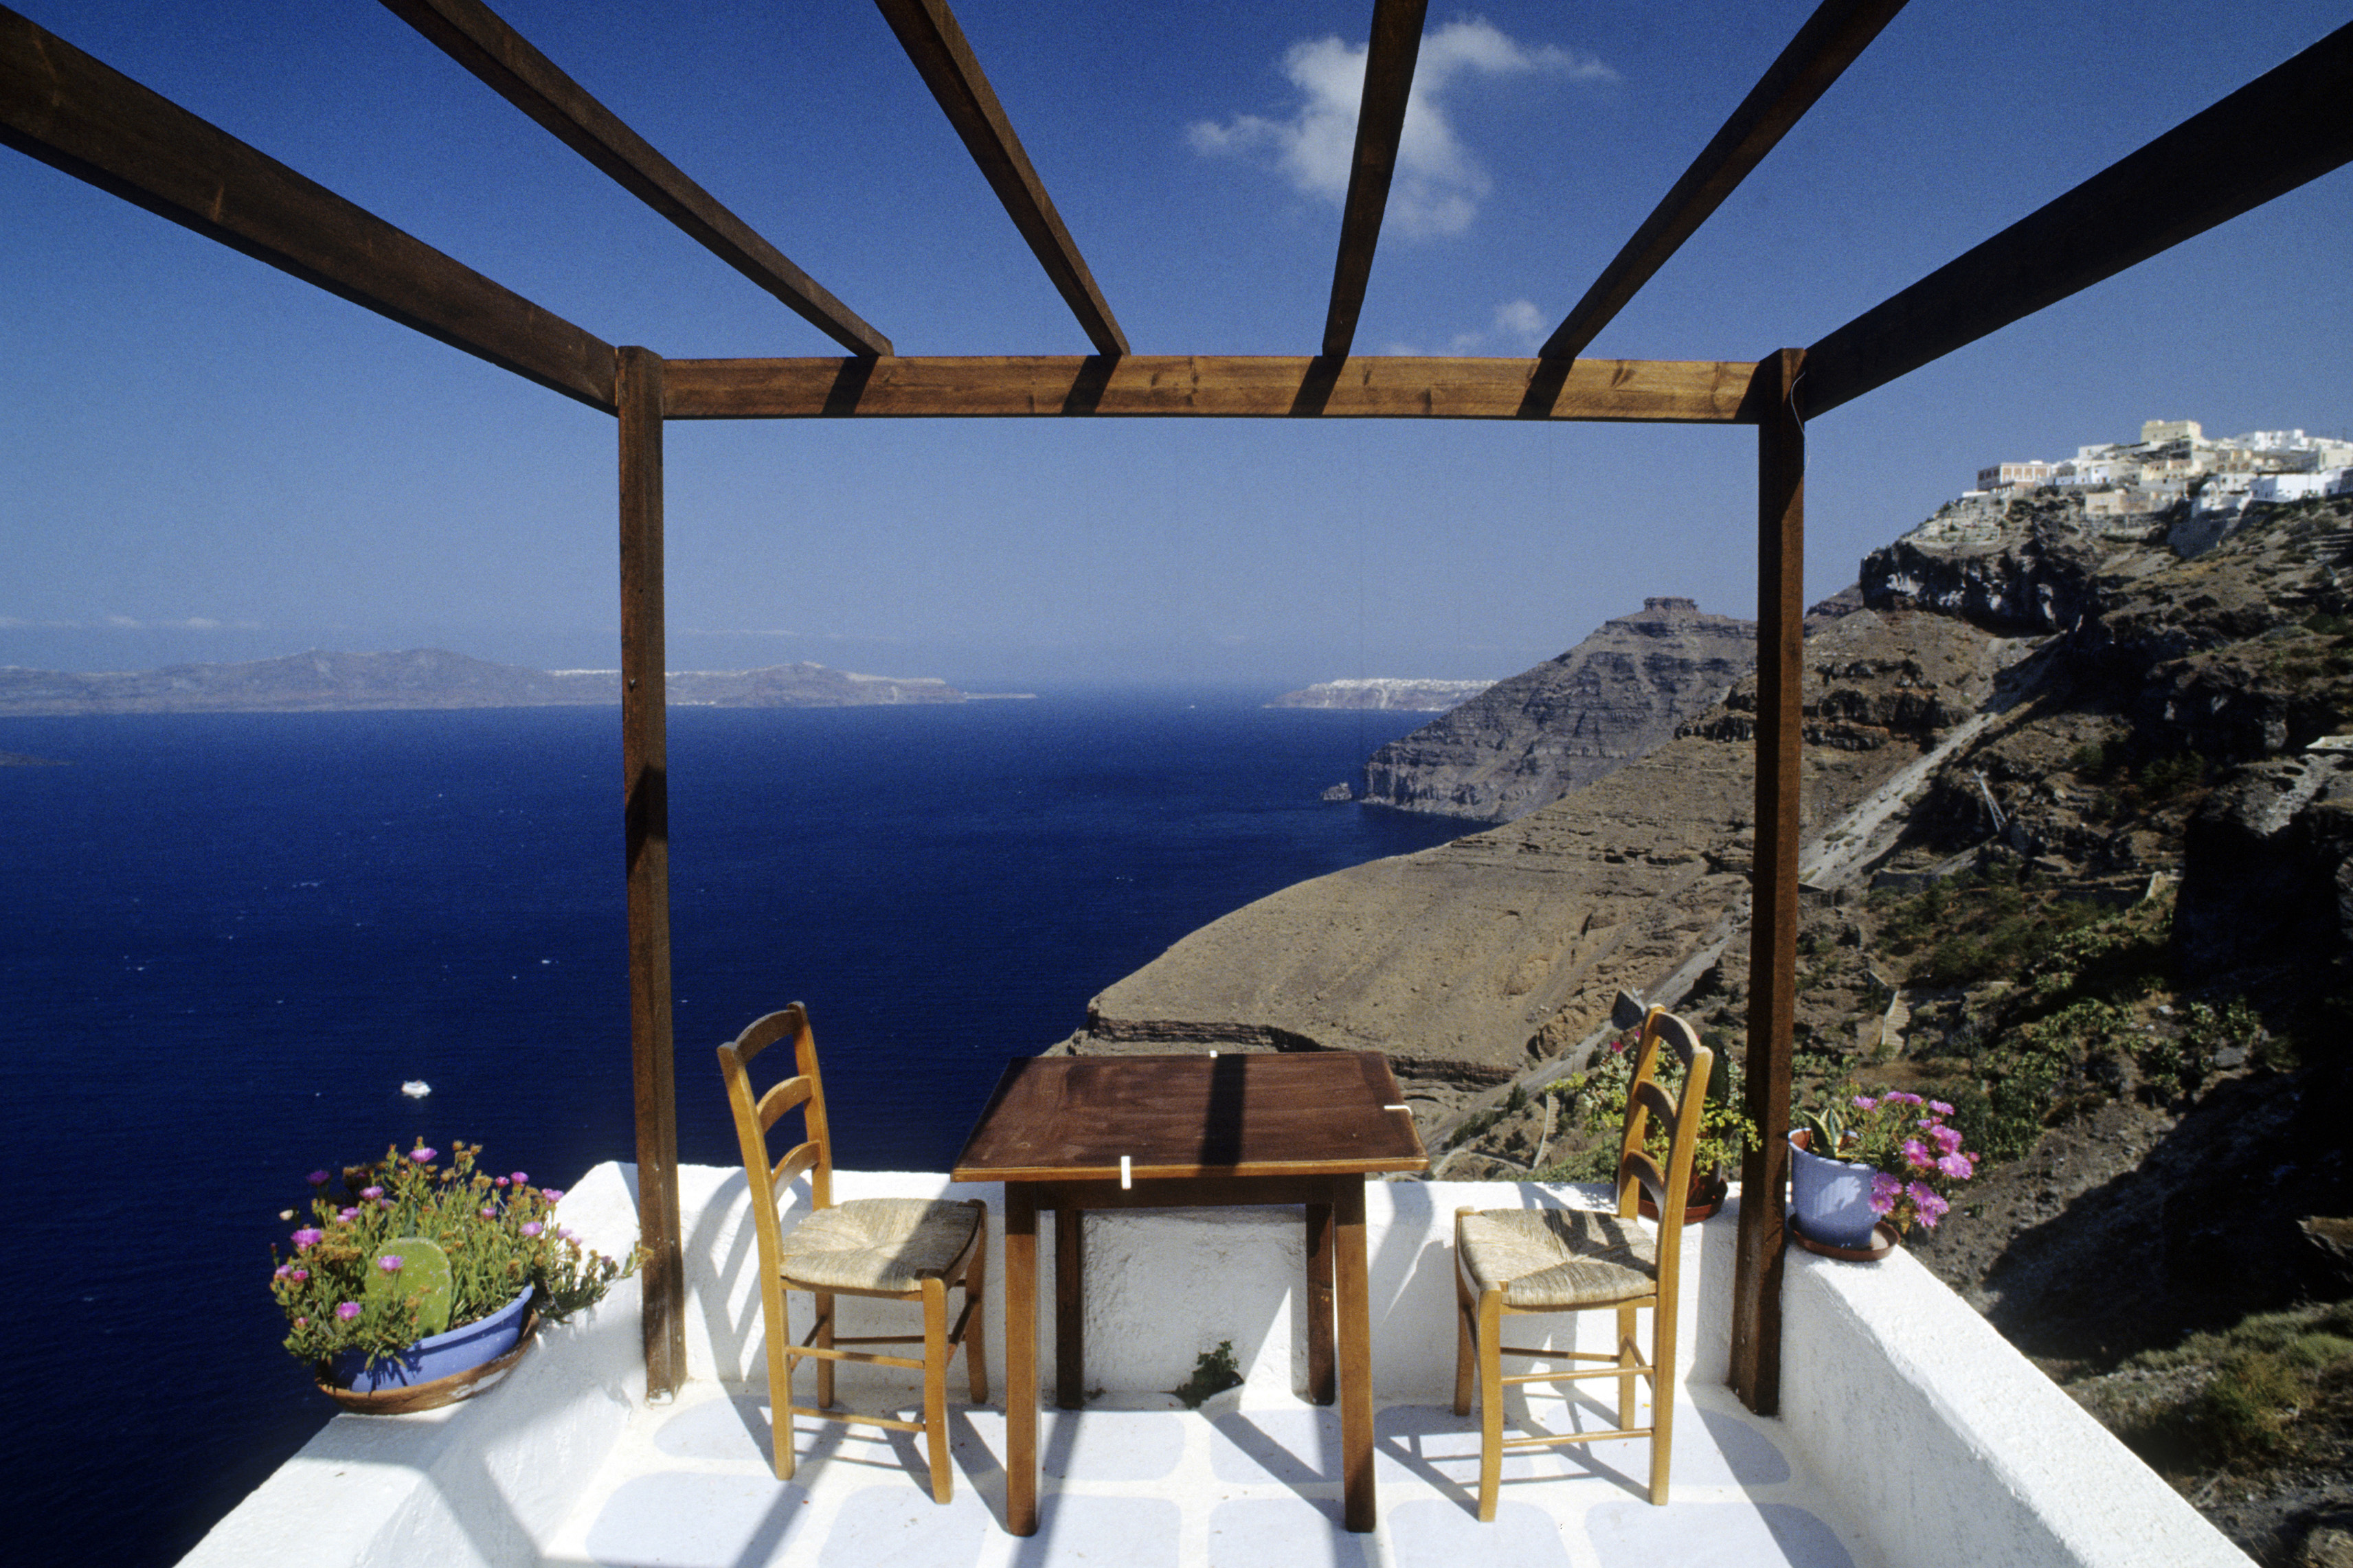 greece, santorini, fira, terrace looking the sea